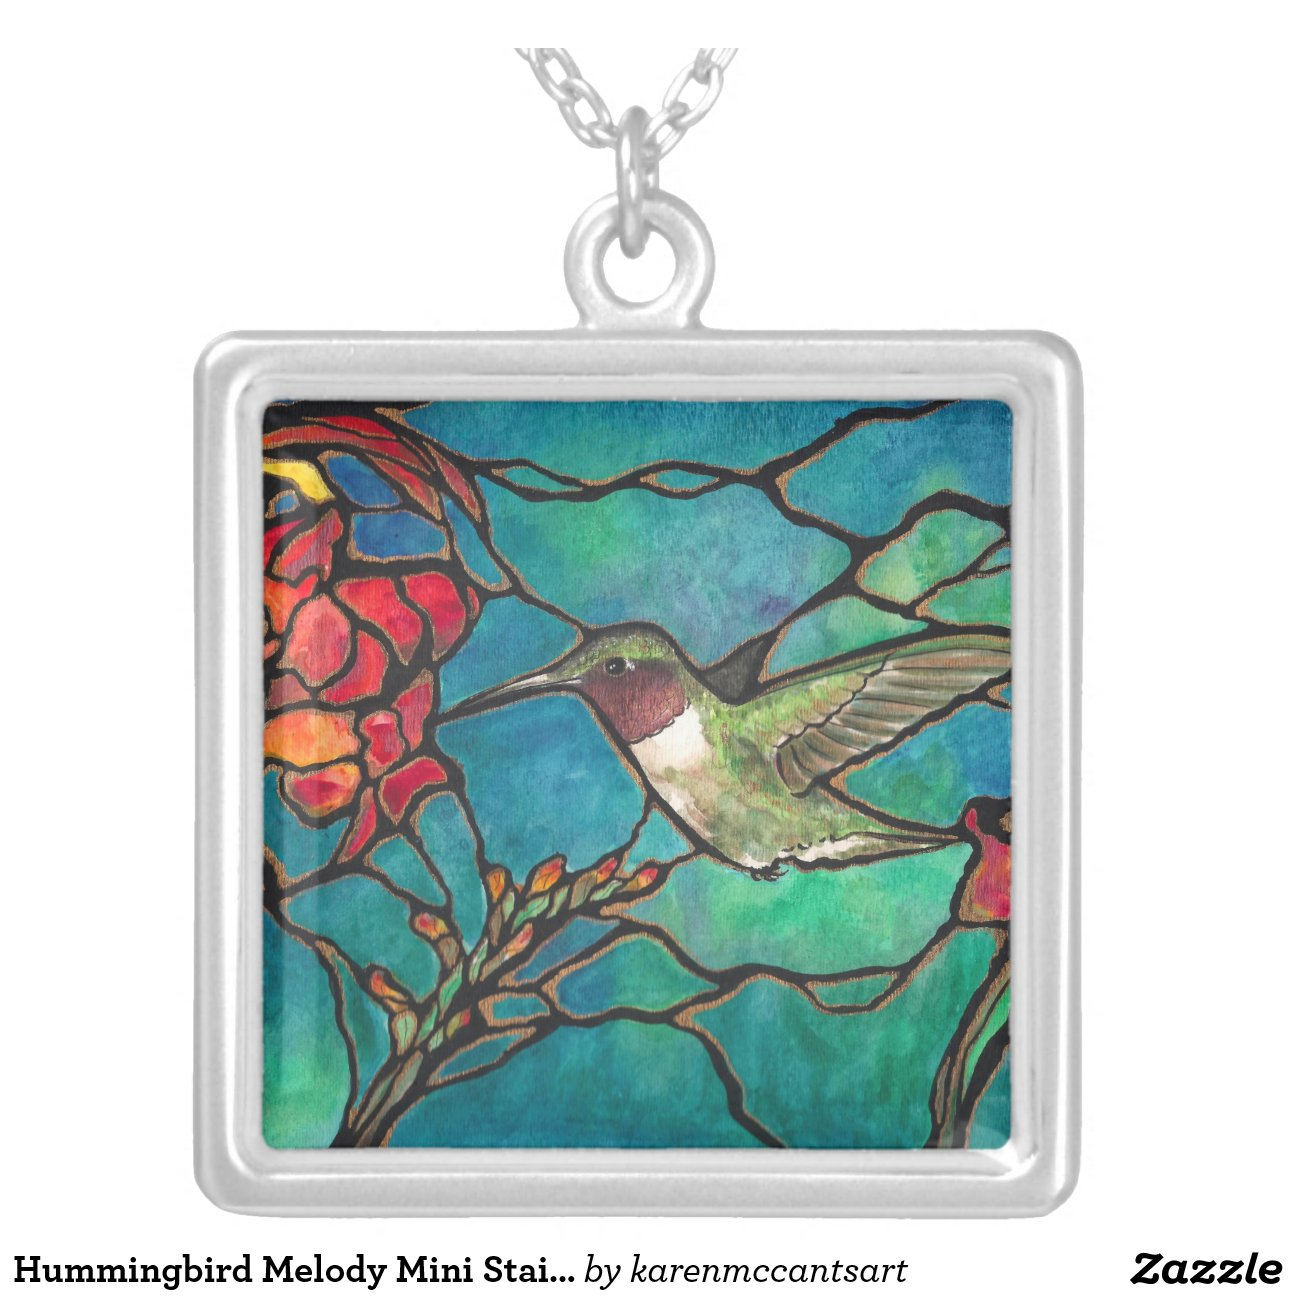 Hummingbird Melody Mini Stained glass Window! Personalized